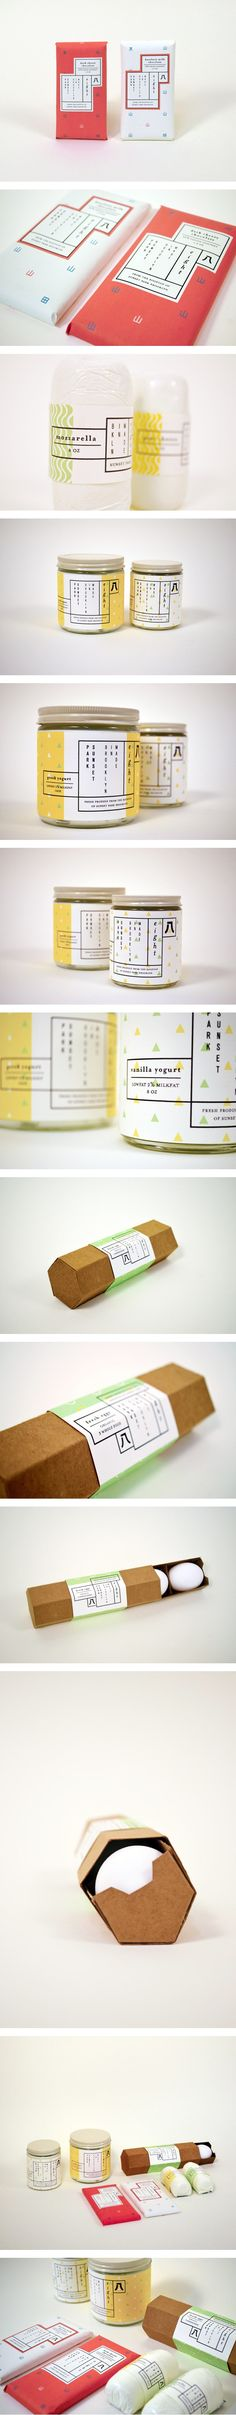 8 | Eight Rooftop Gardens Packaging by Esther Li.